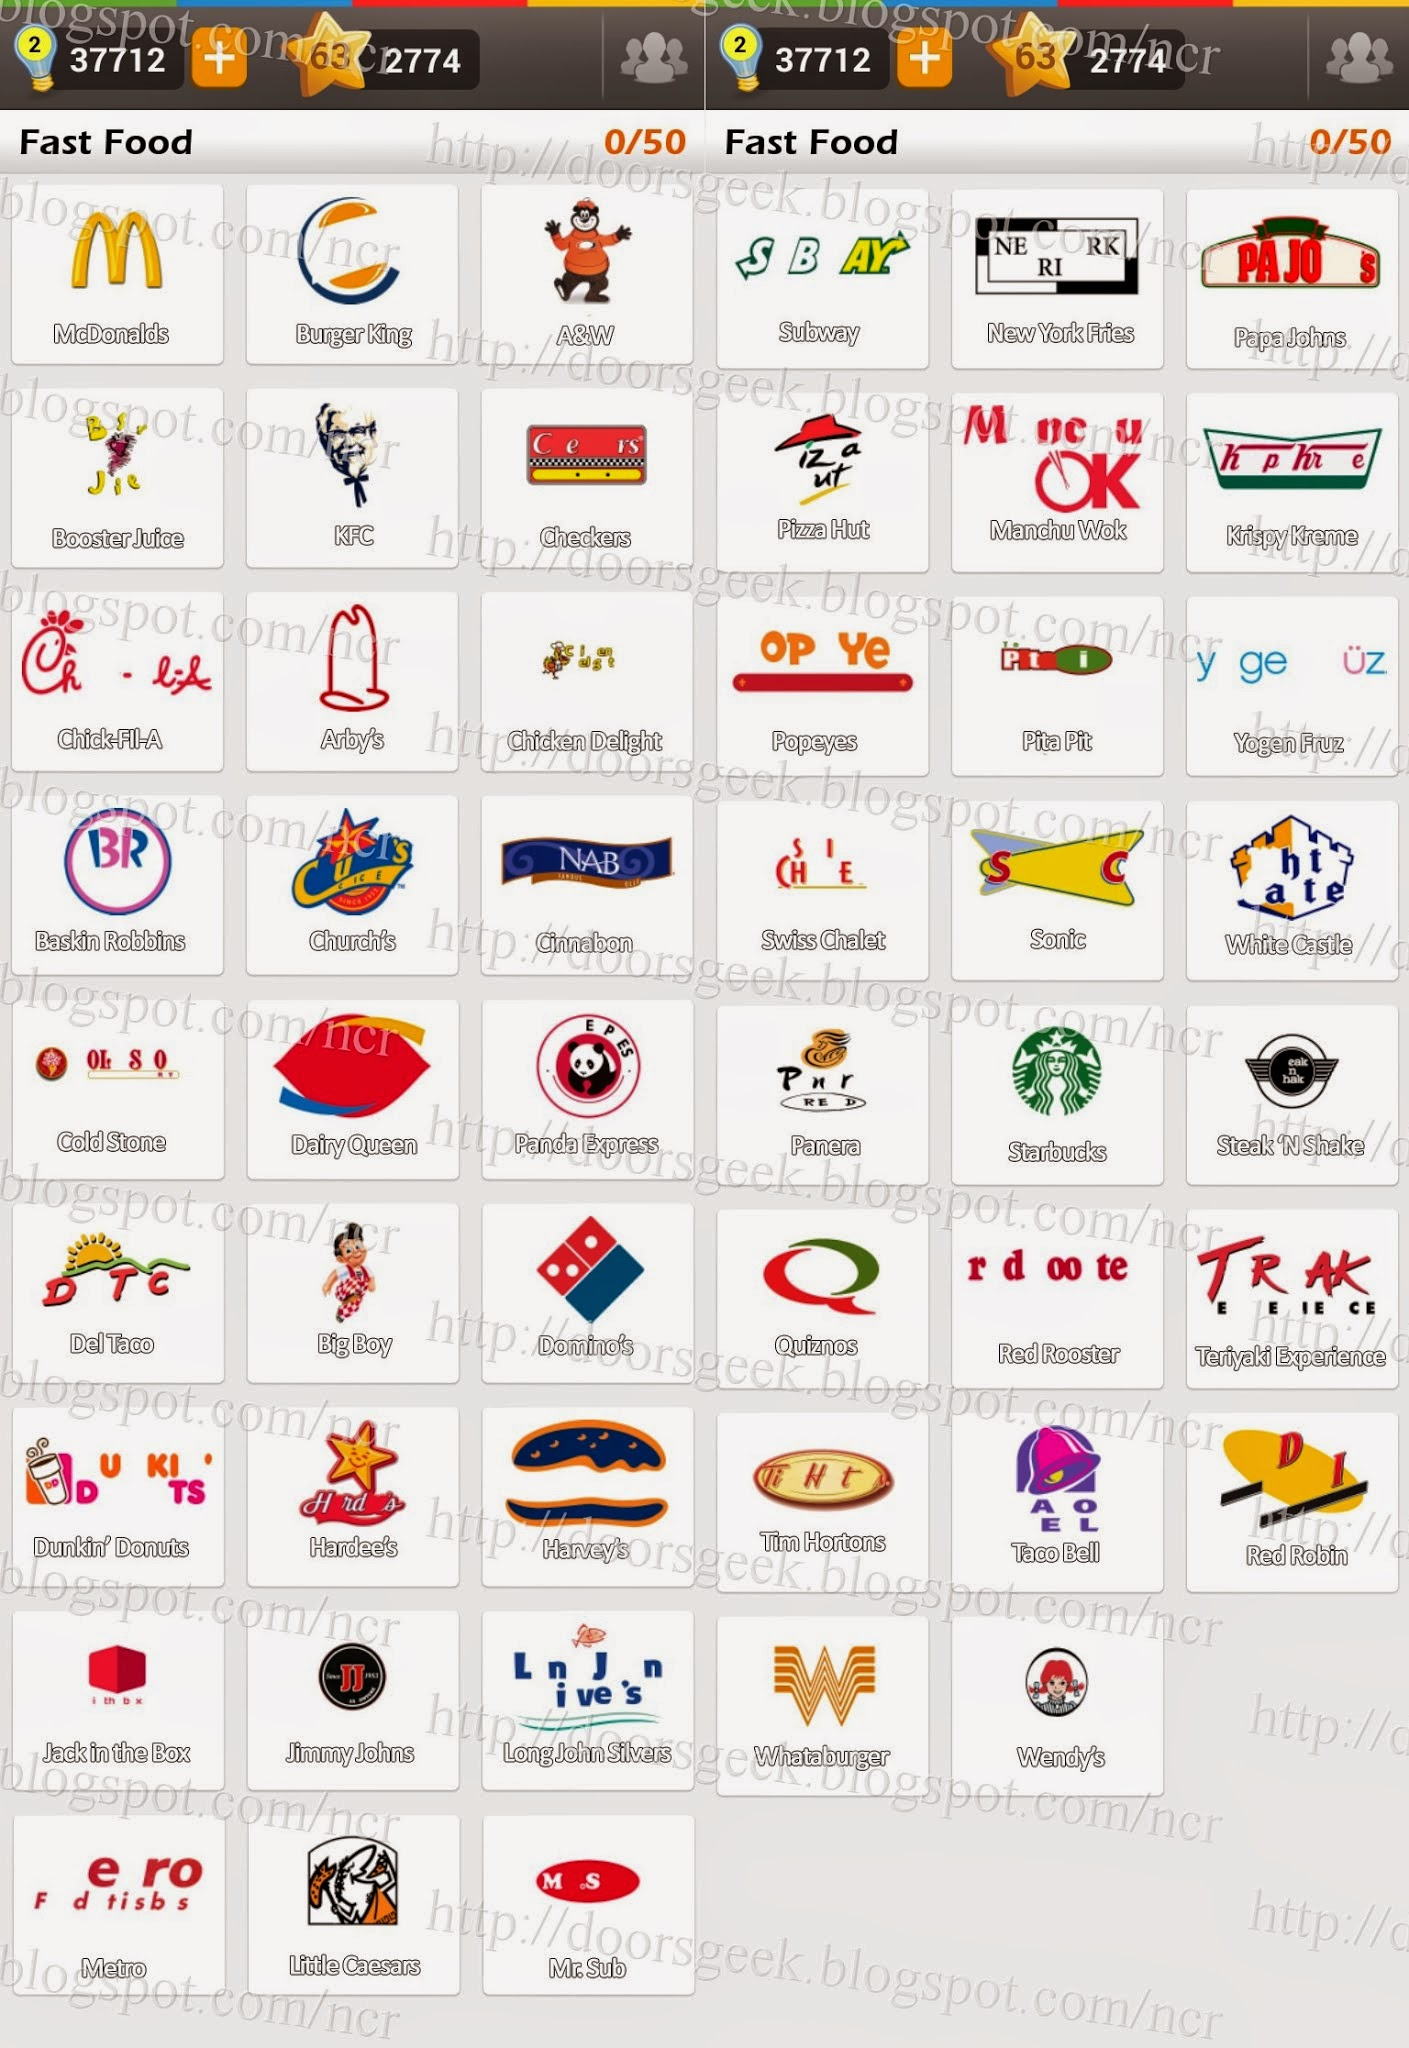 Fast Food Logo Game Answers